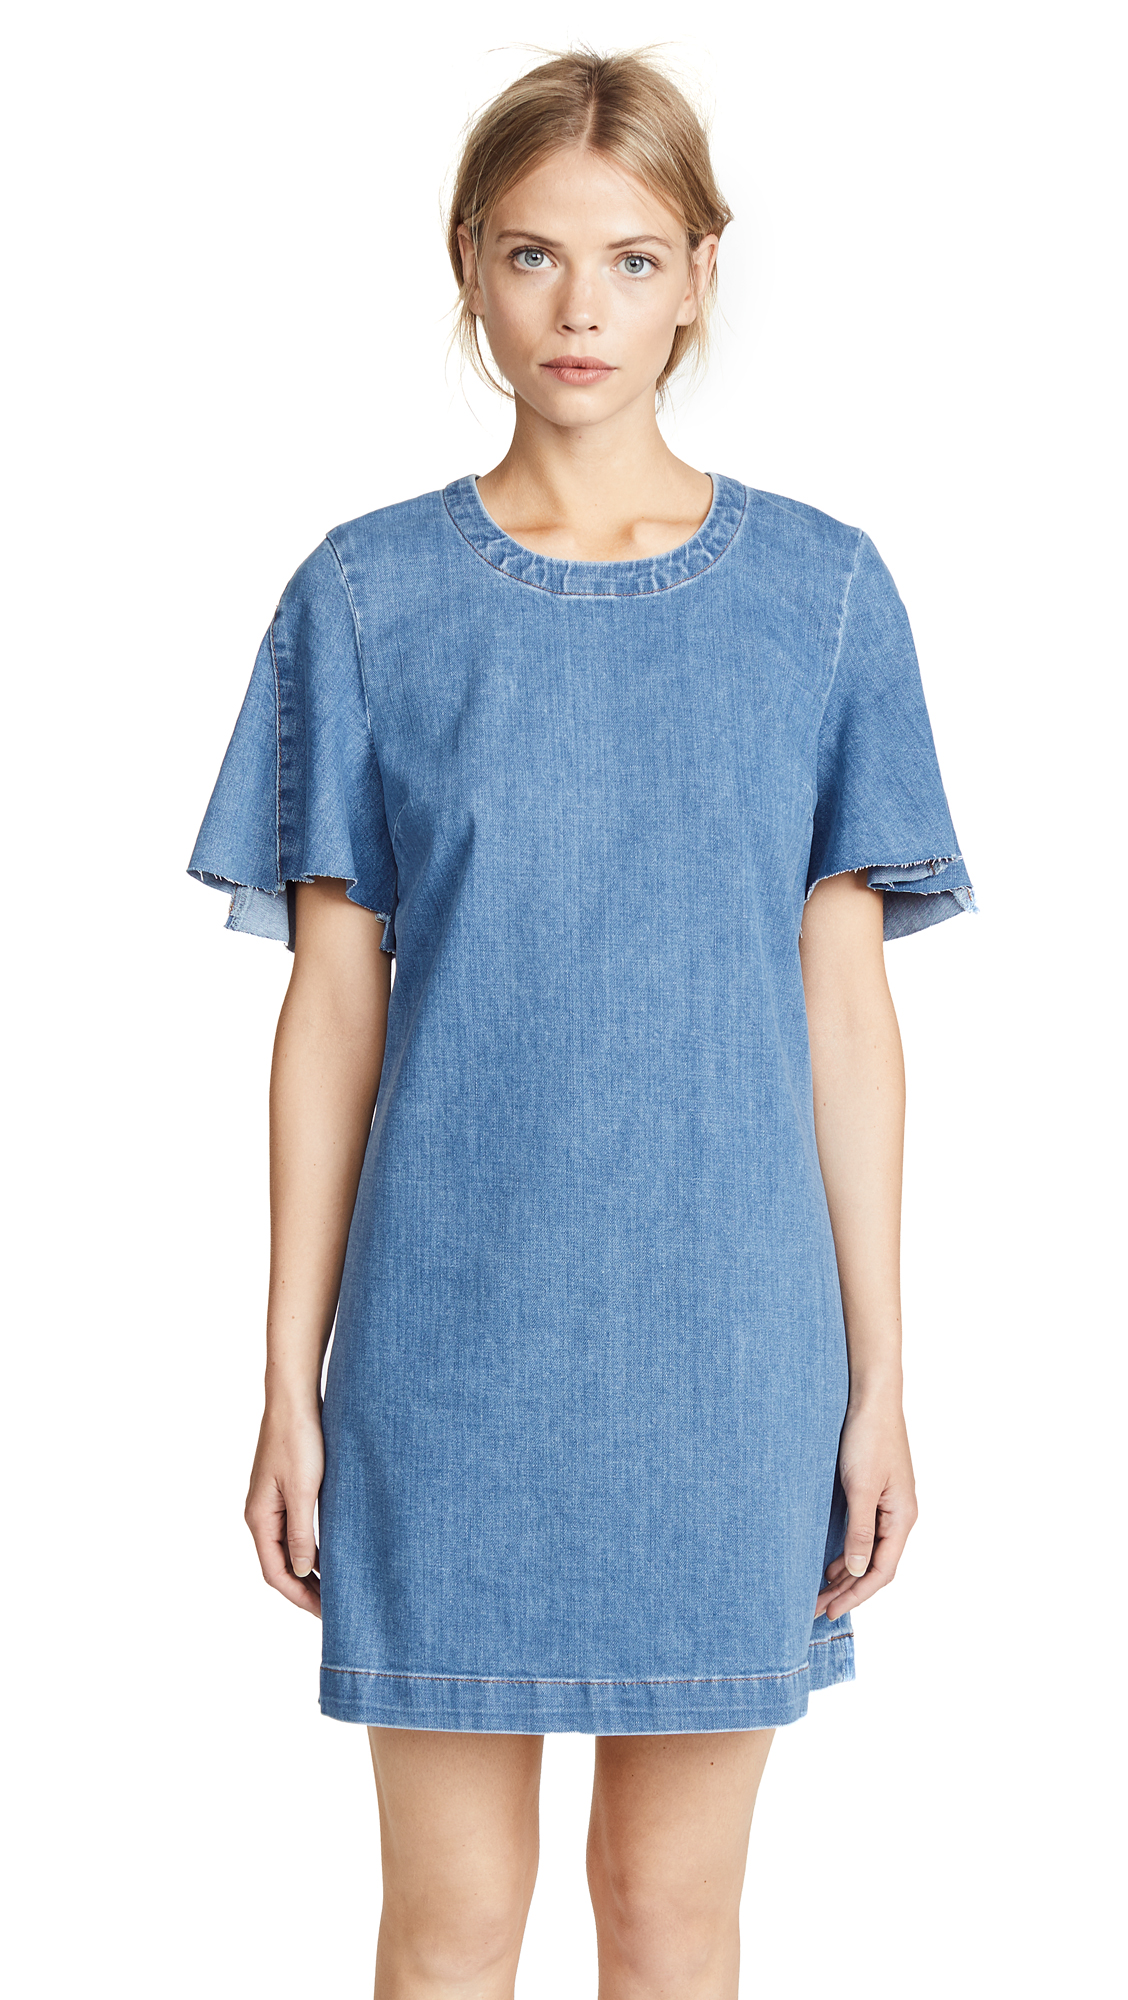 7 For All Mankind Popover Denim Dress